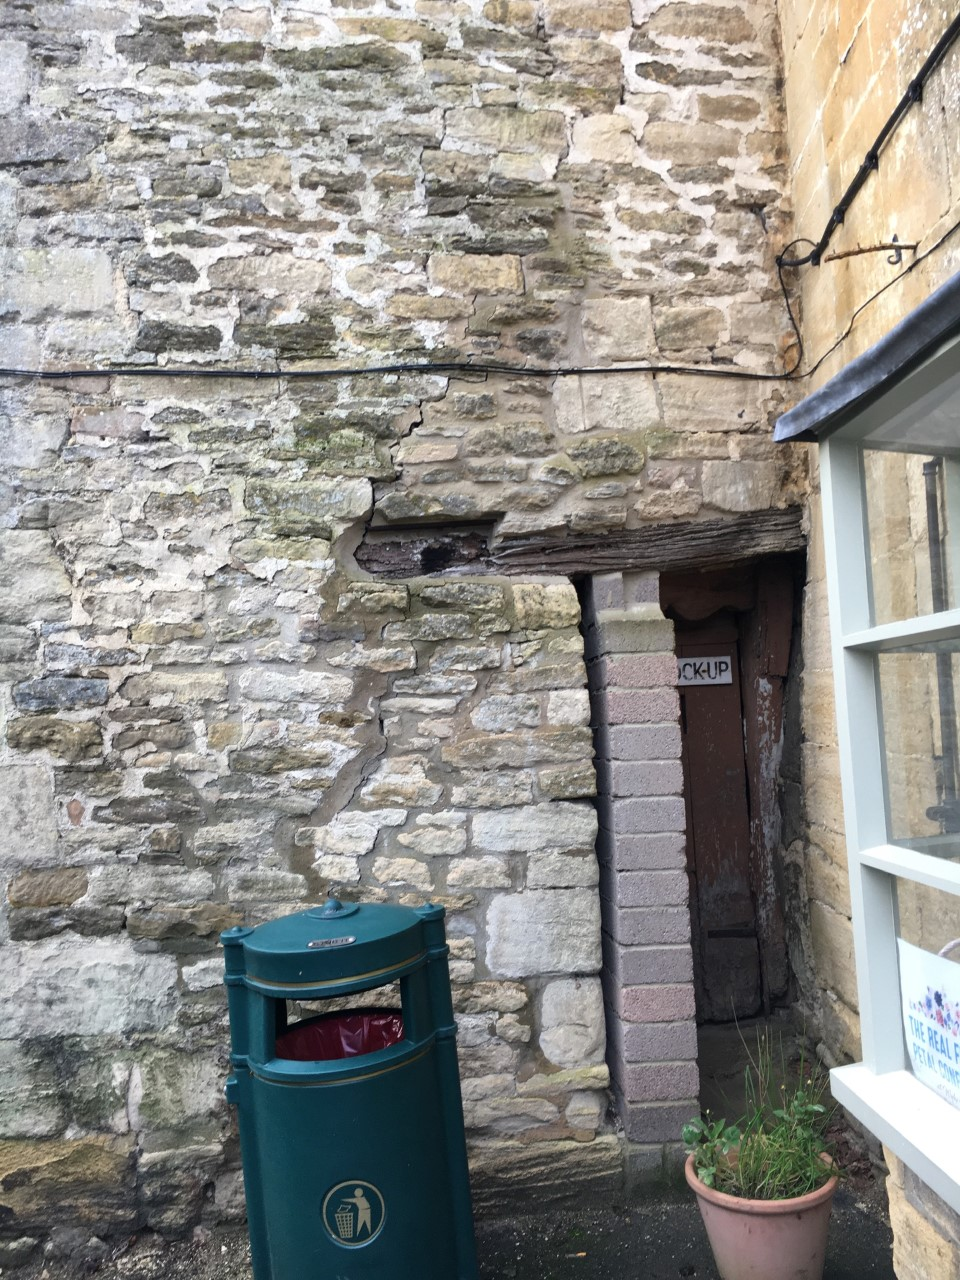 Entrance to the lock-up, in December 2019. A column of breeze blocks now obscures the entrance. This was installed for support after movement in the outside wall.